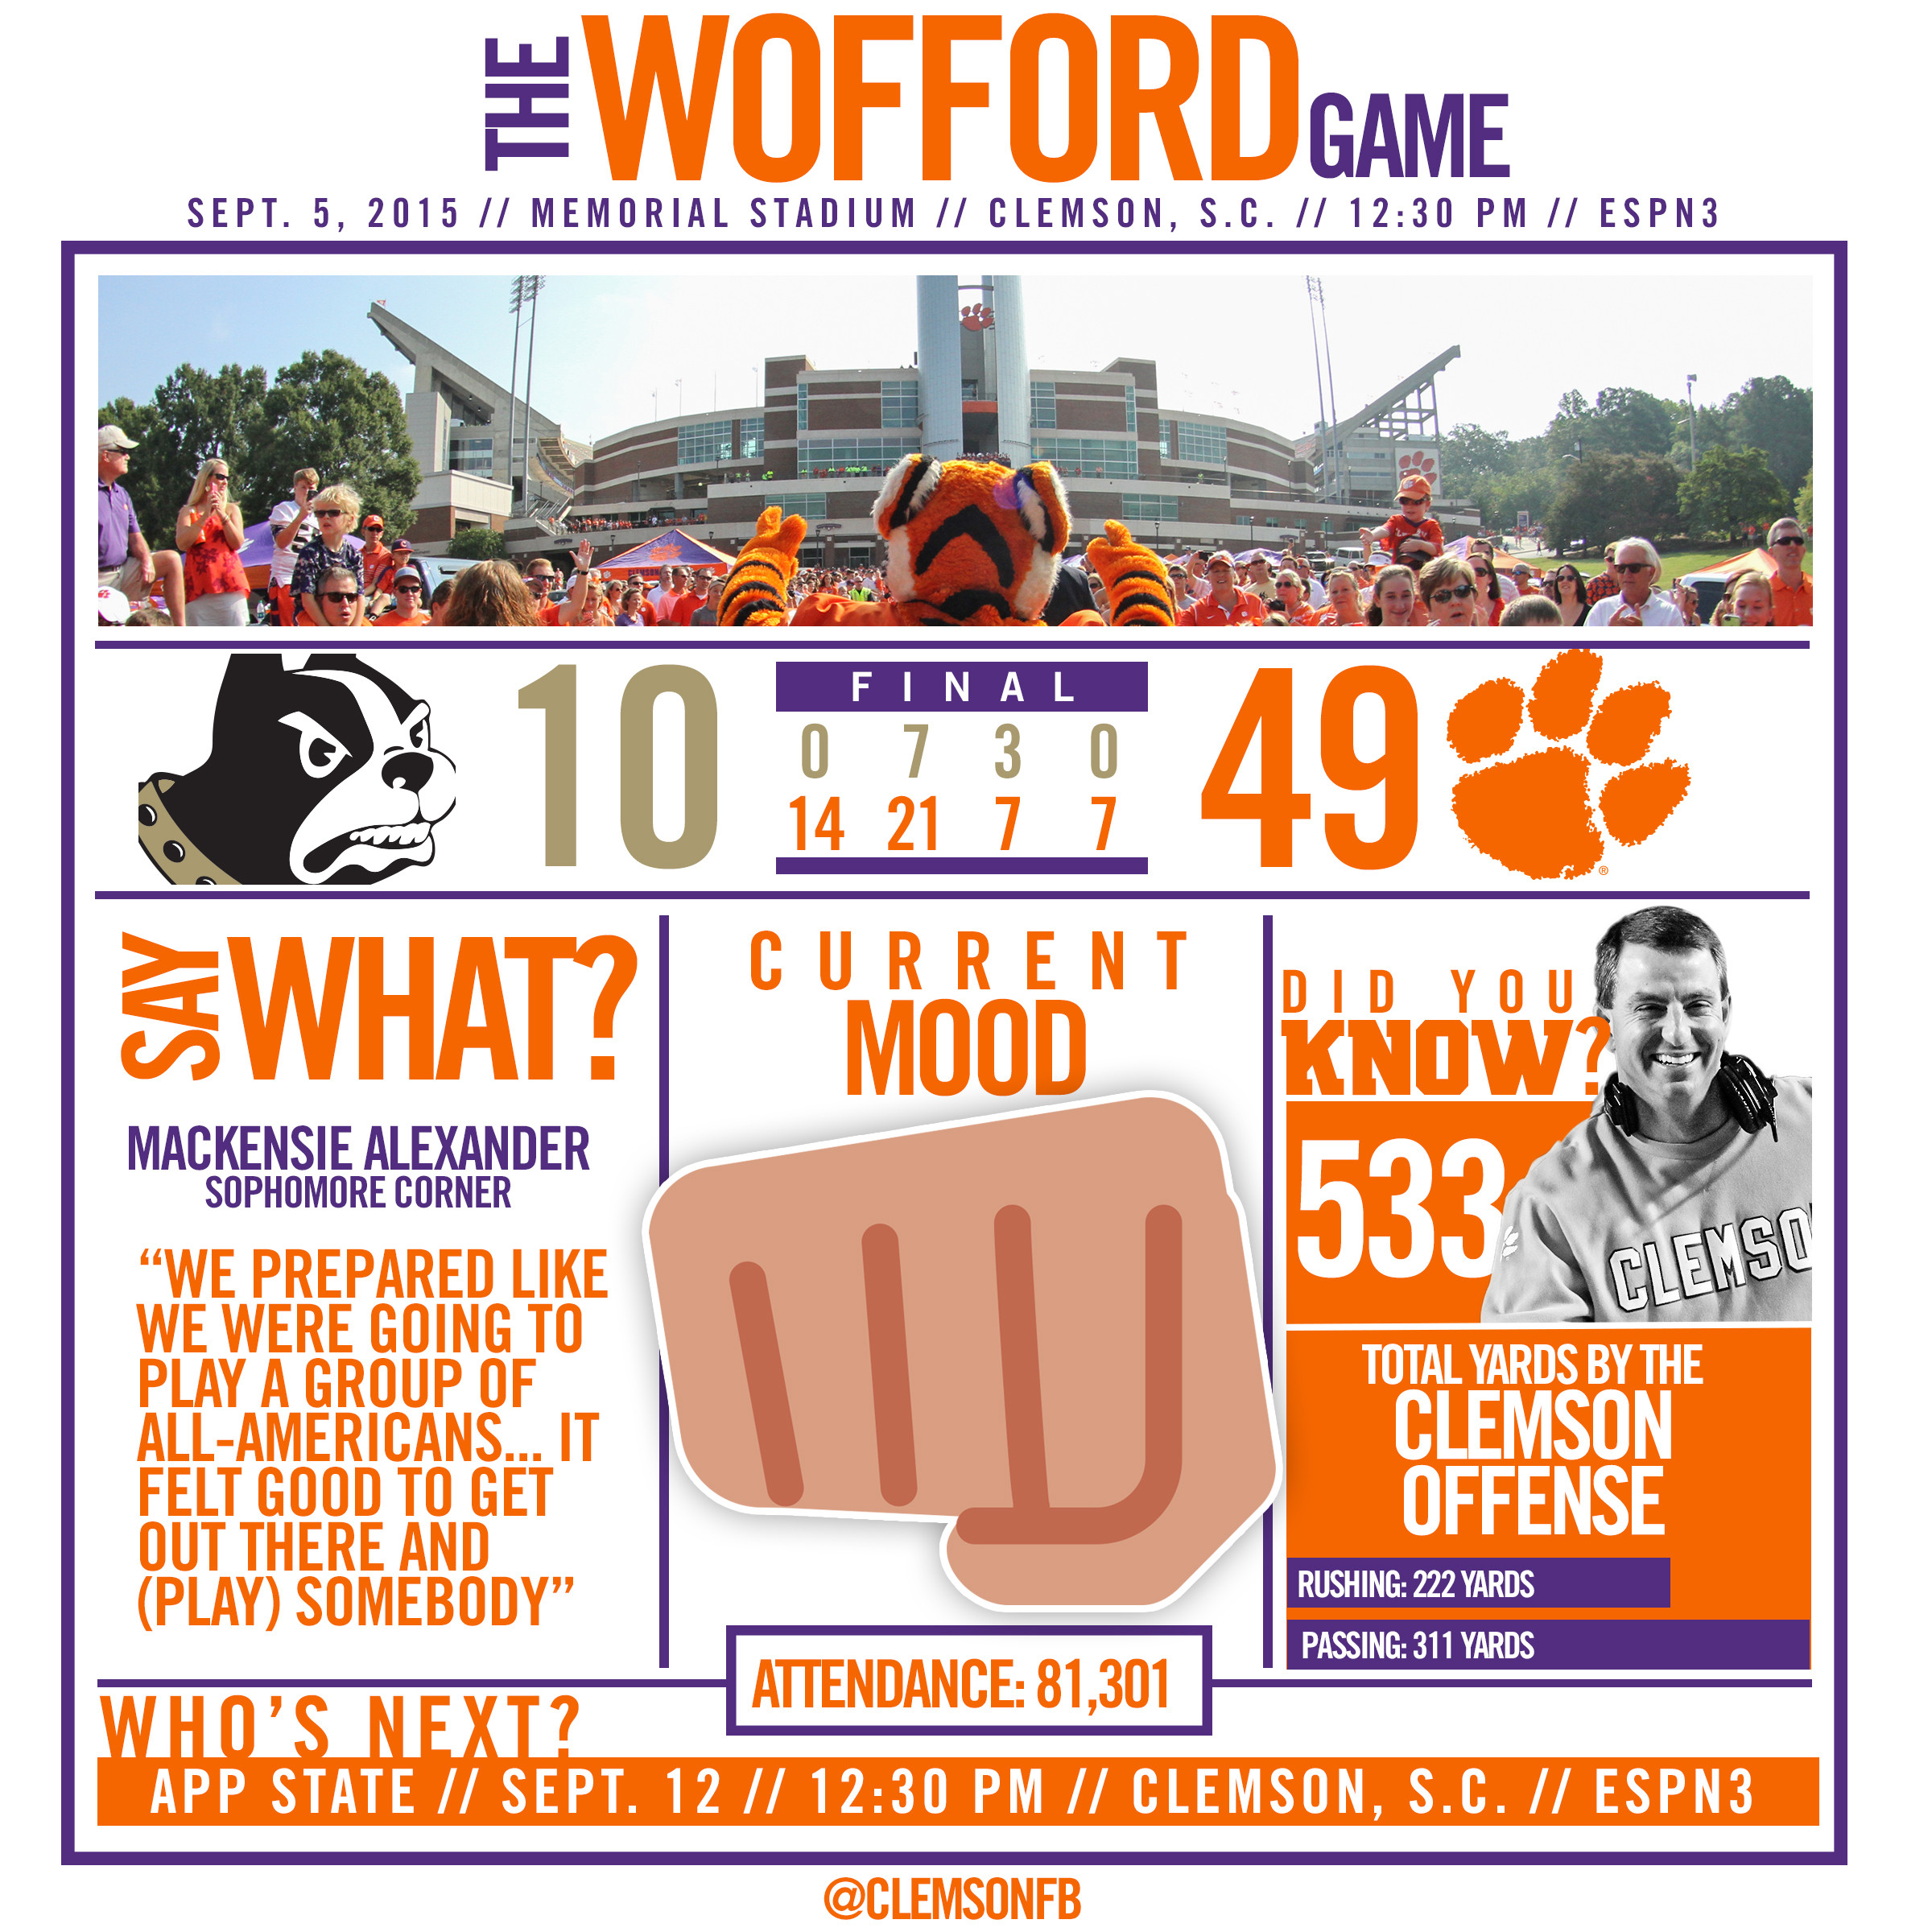 Around the Web – Clemson vs. Wofford